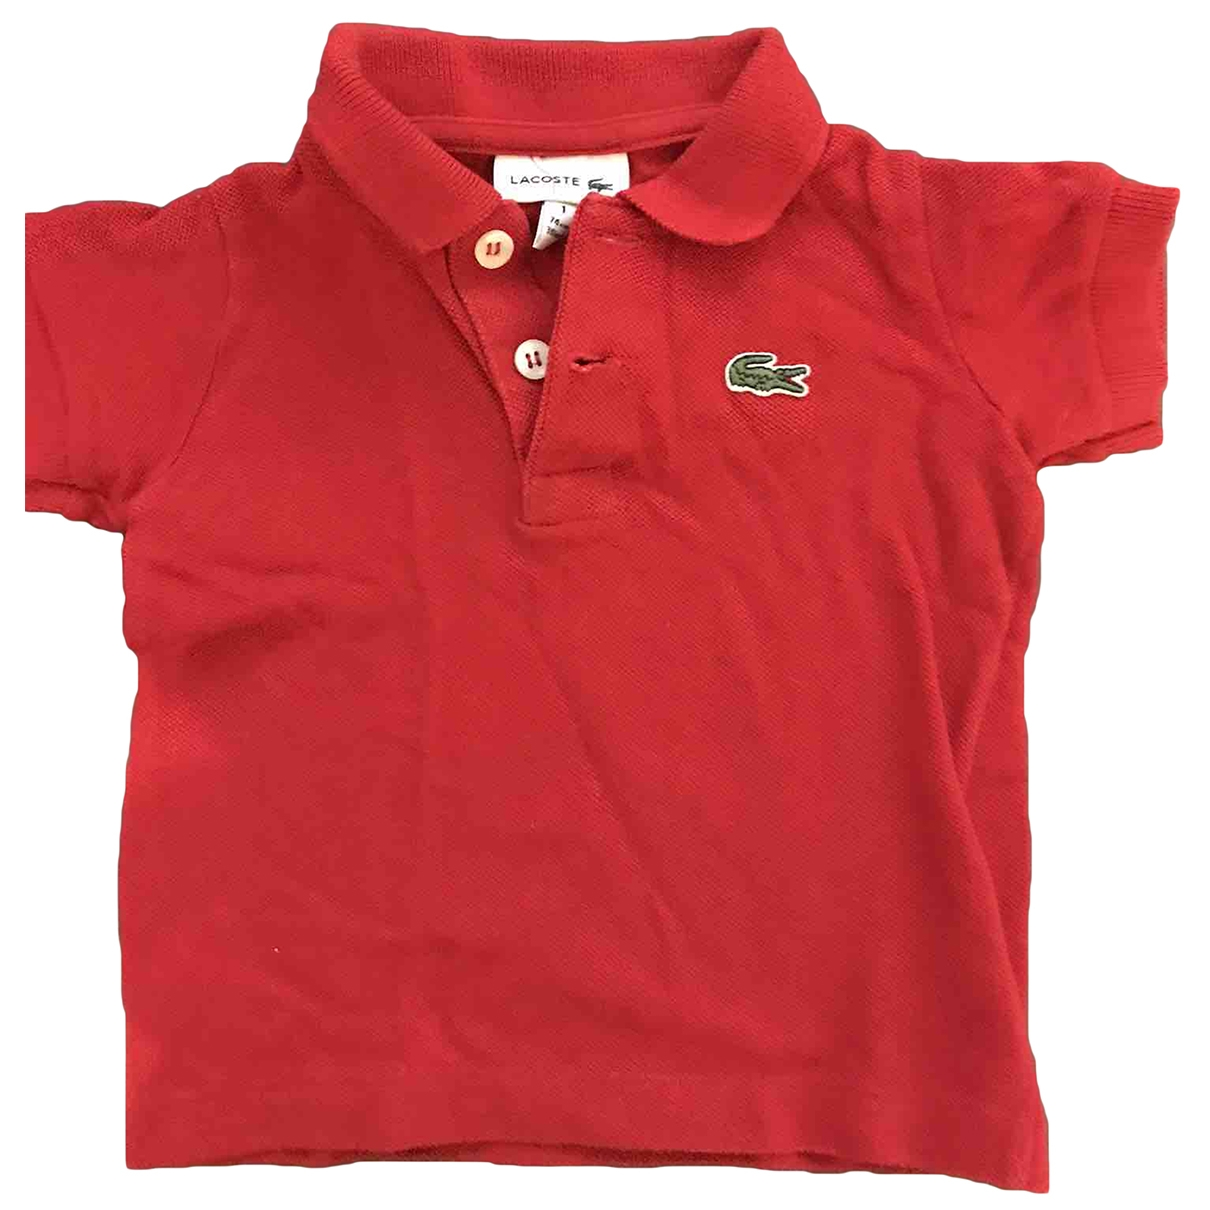 Lacoste \N Red Cotton  top for Kids 12 months - up to 74cm FR